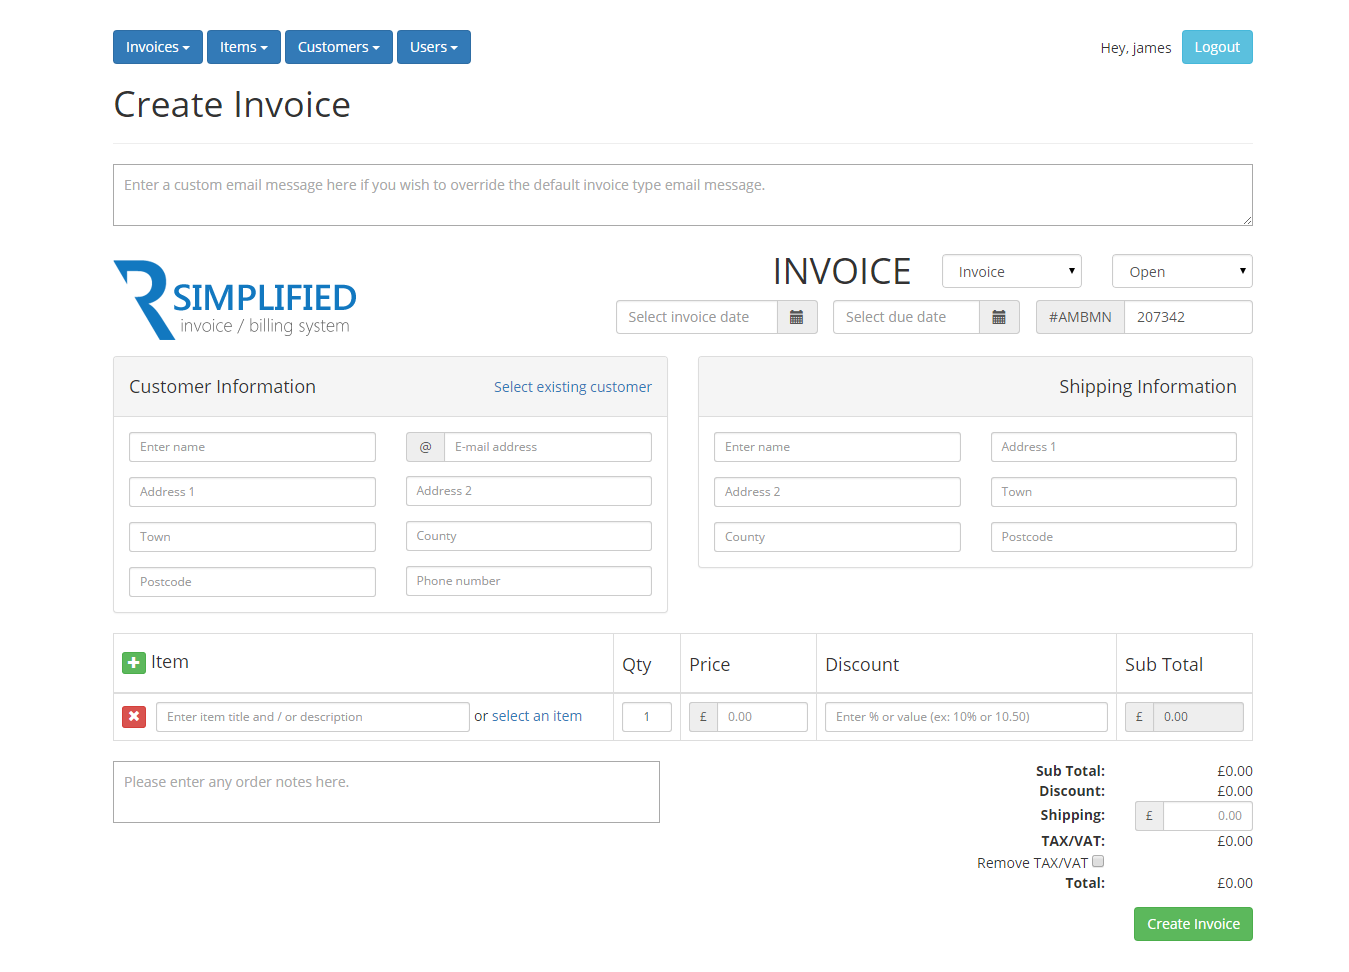 Breakupus  Remarkable Simplified Php Invoice  Billing System By Rebootdigitaluk  With Engaging  Createinvoicepng  With Astonishing Receiption Desk Also Pork Chop Receipts In Addition Buy Receipts And Receipt Of Goods Form As Well As Sample Receipt Of Payment Additionally Free Printable Receipts Online From Codecanyonnet With Breakupus  Engaging Simplified Php Invoice  Billing System By Rebootdigitaluk  With Astonishing  Createinvoicepng  And Remarkable Receiption Desk Also Pork Chop Receipts In Addition Buy Receipts From Codecanyonnet